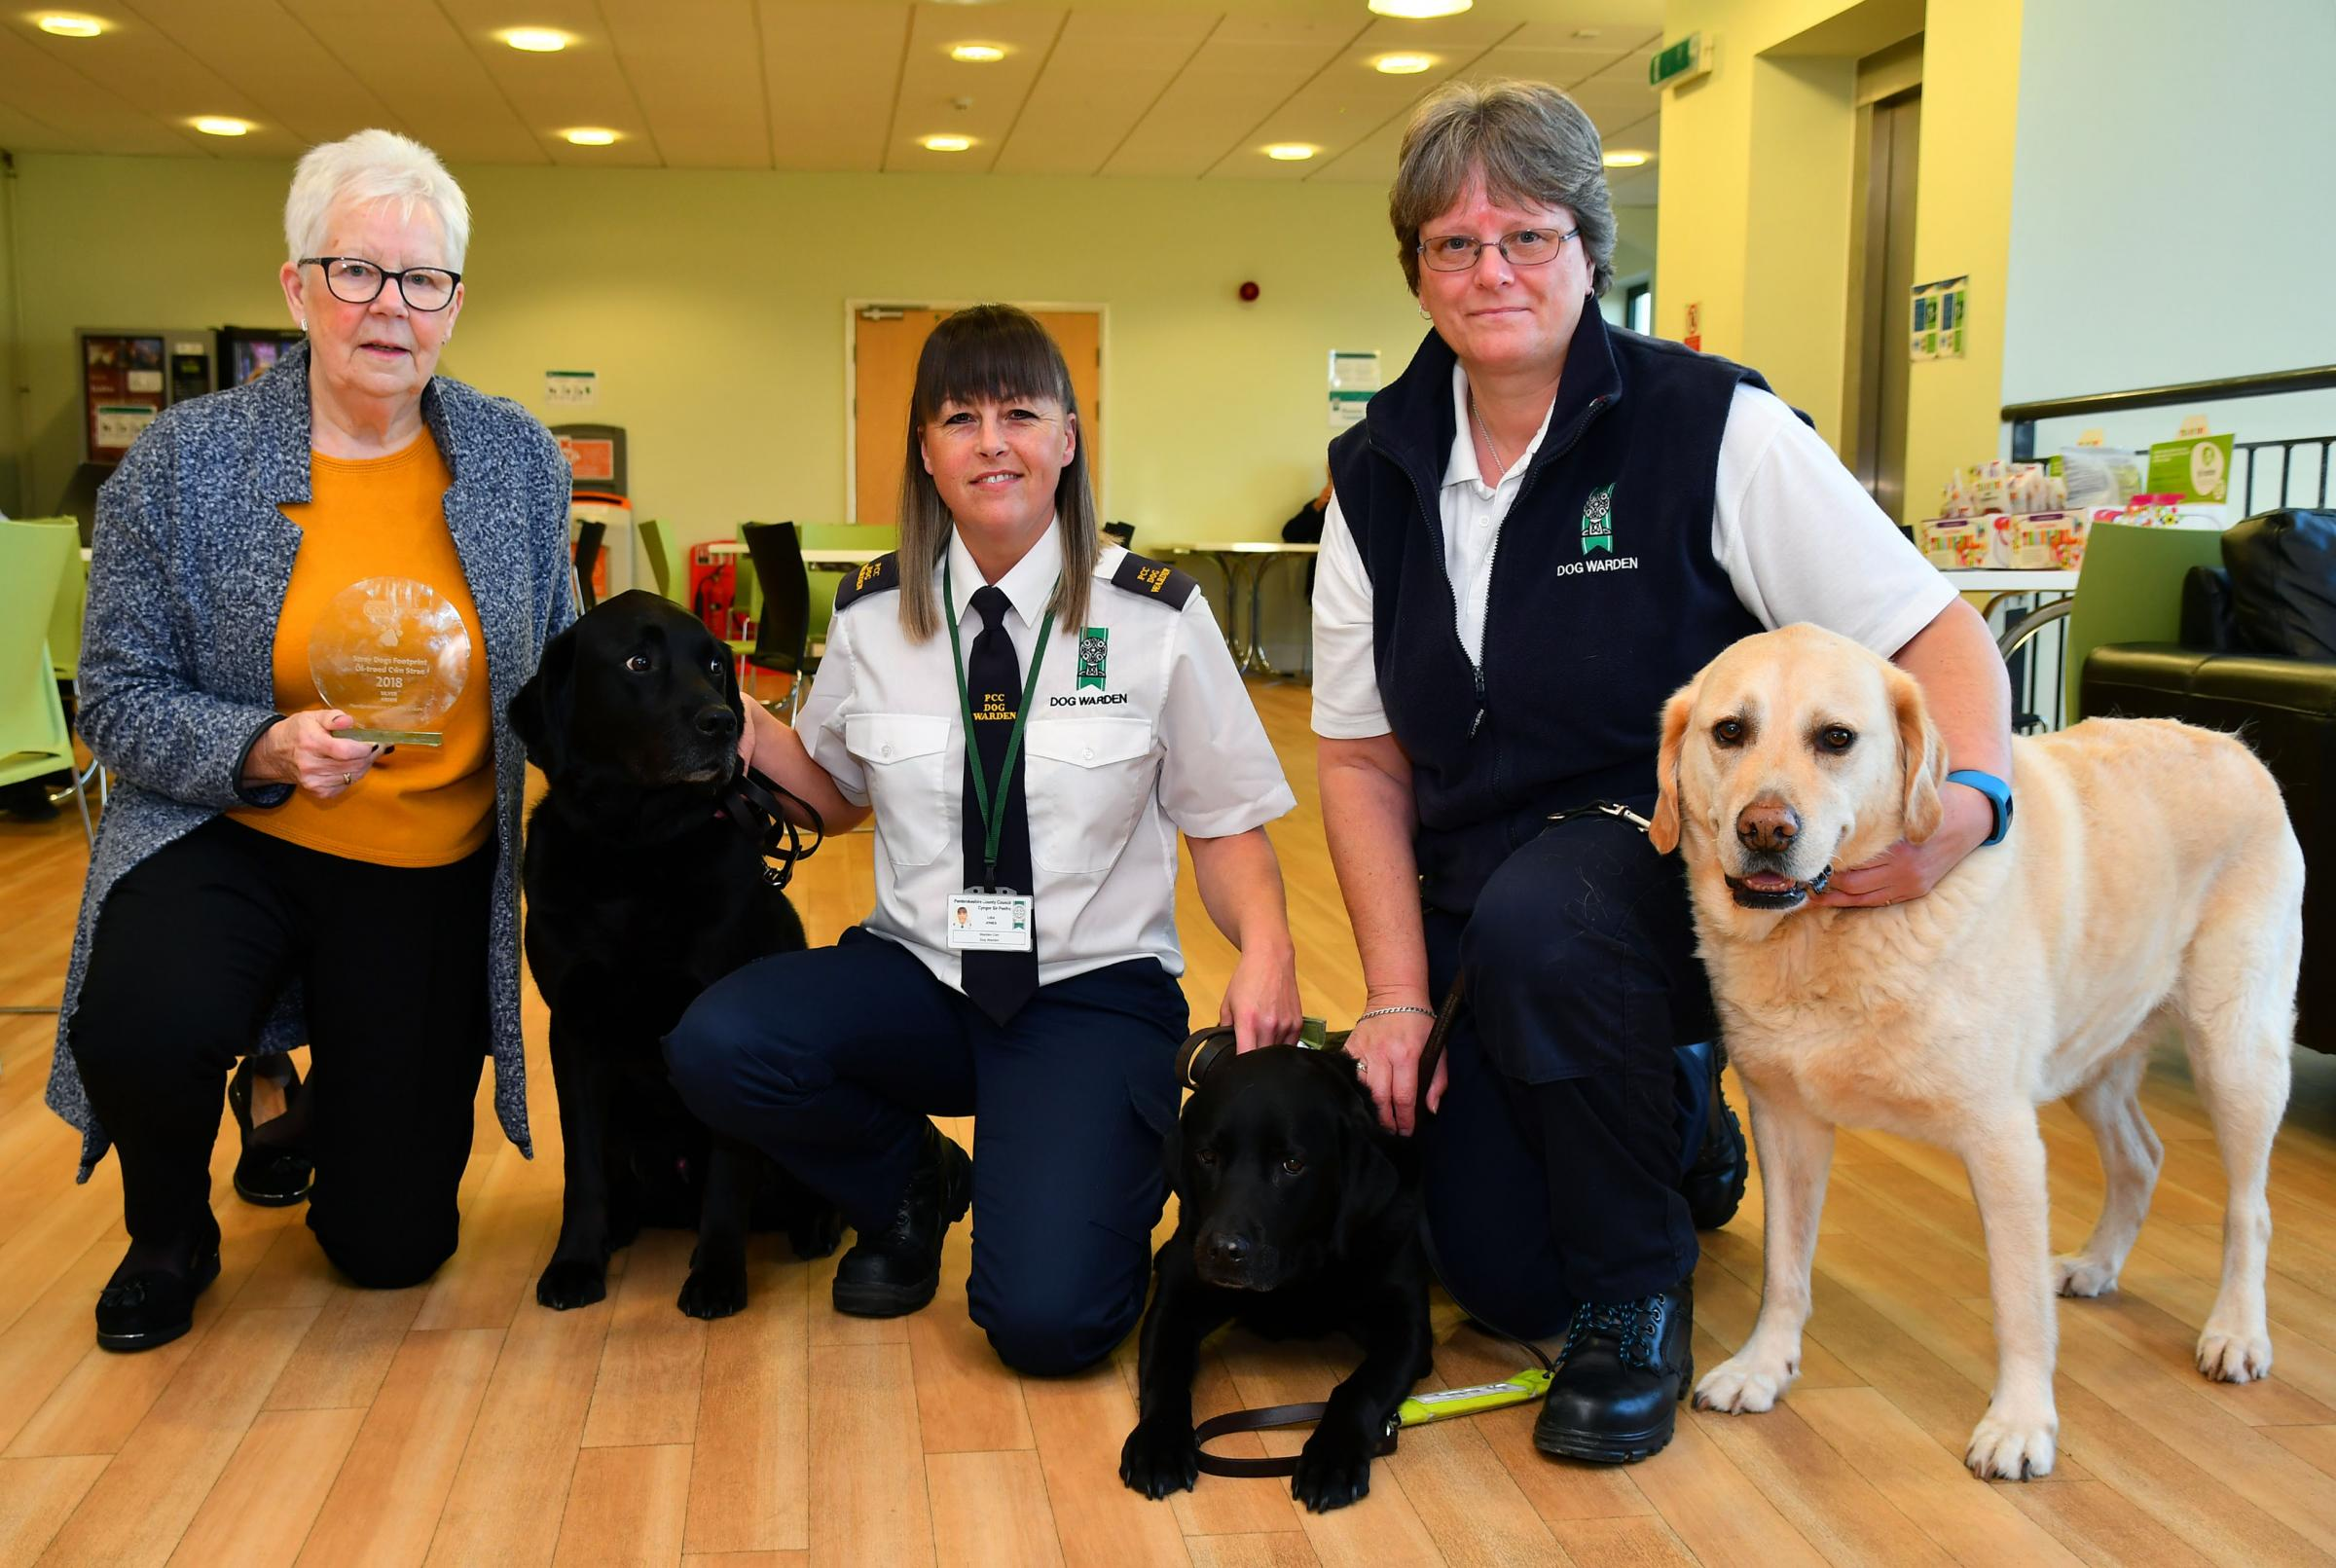 Pictured with the RSPCA award is Cllr Pat Davies and Pembrokeshire County Council dog wardens Sally Bland and Lisa Jones.